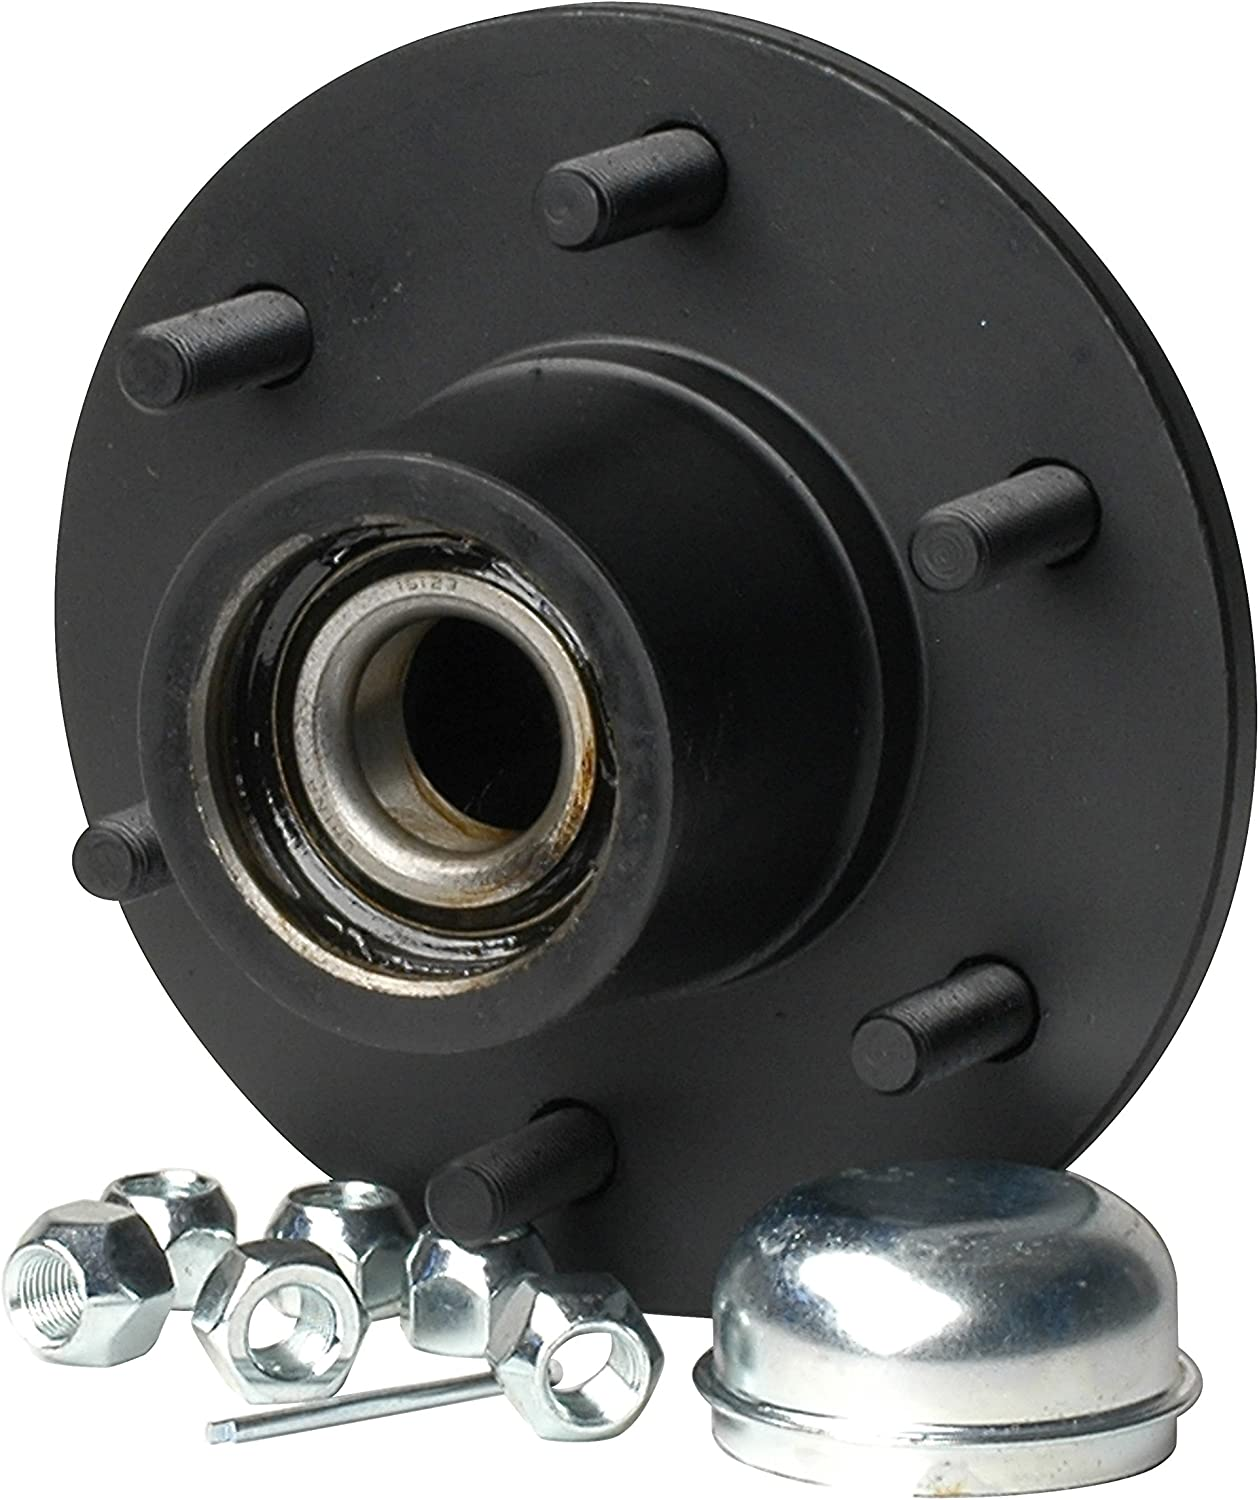 """CE Smith Trailer 13711 Trailer Hub Kit (Tapered 1 3/4"""" to 1 1/4"""" Stud (6 x 5 1/2) 12"""" Brake Size)- Replacement Parts and Accessories for your Ski Boat, Fishing Boat or Sailboat Trailer,Black"""